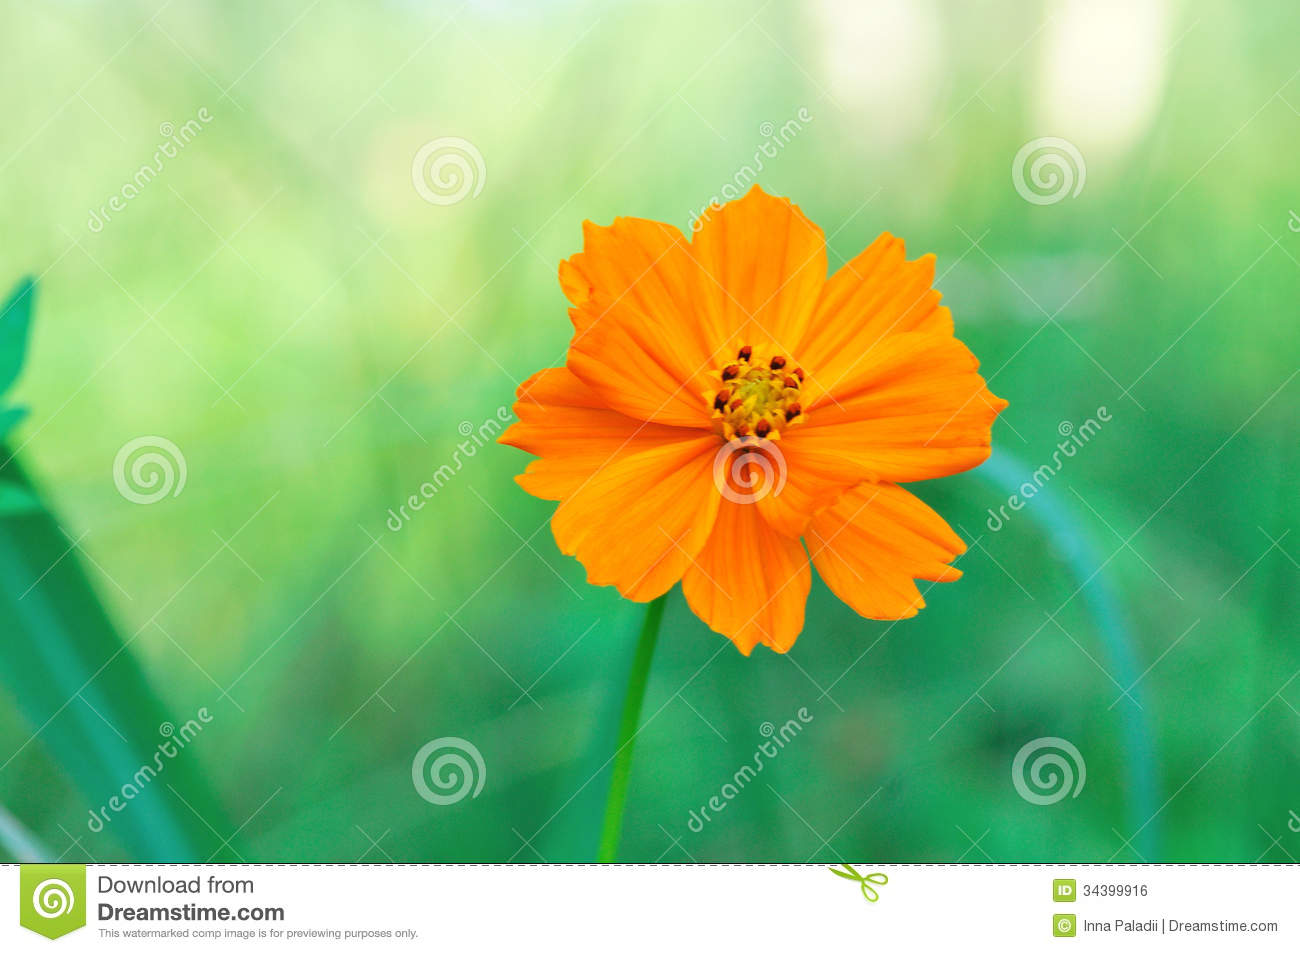 beauty flower royalty free stock image  image, Beautiful flower